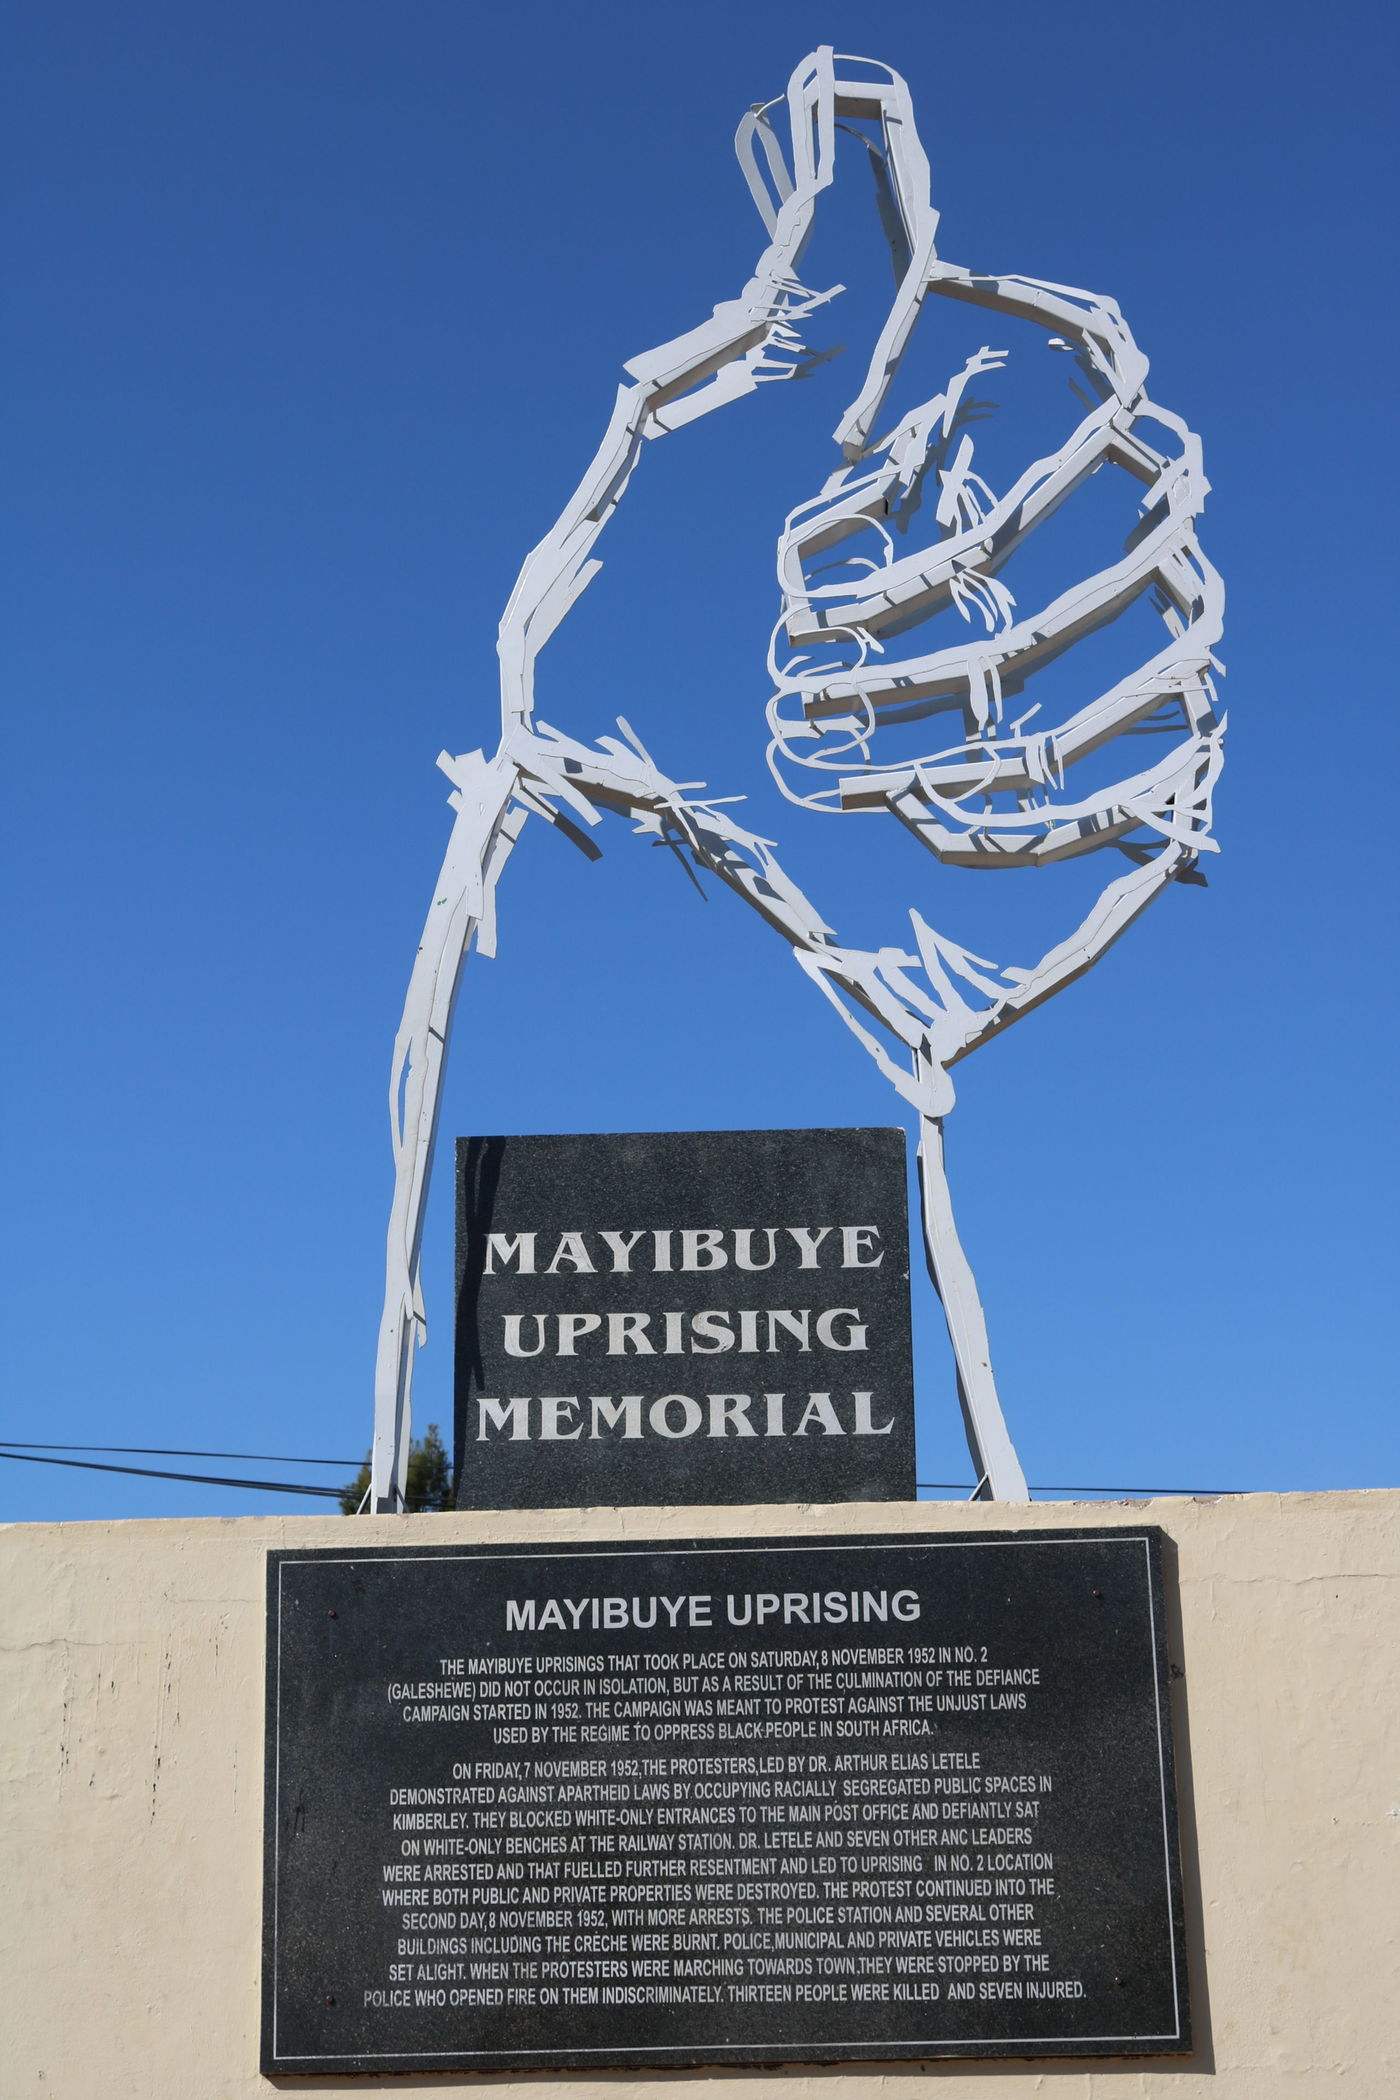 Mayibuye uprising memorial